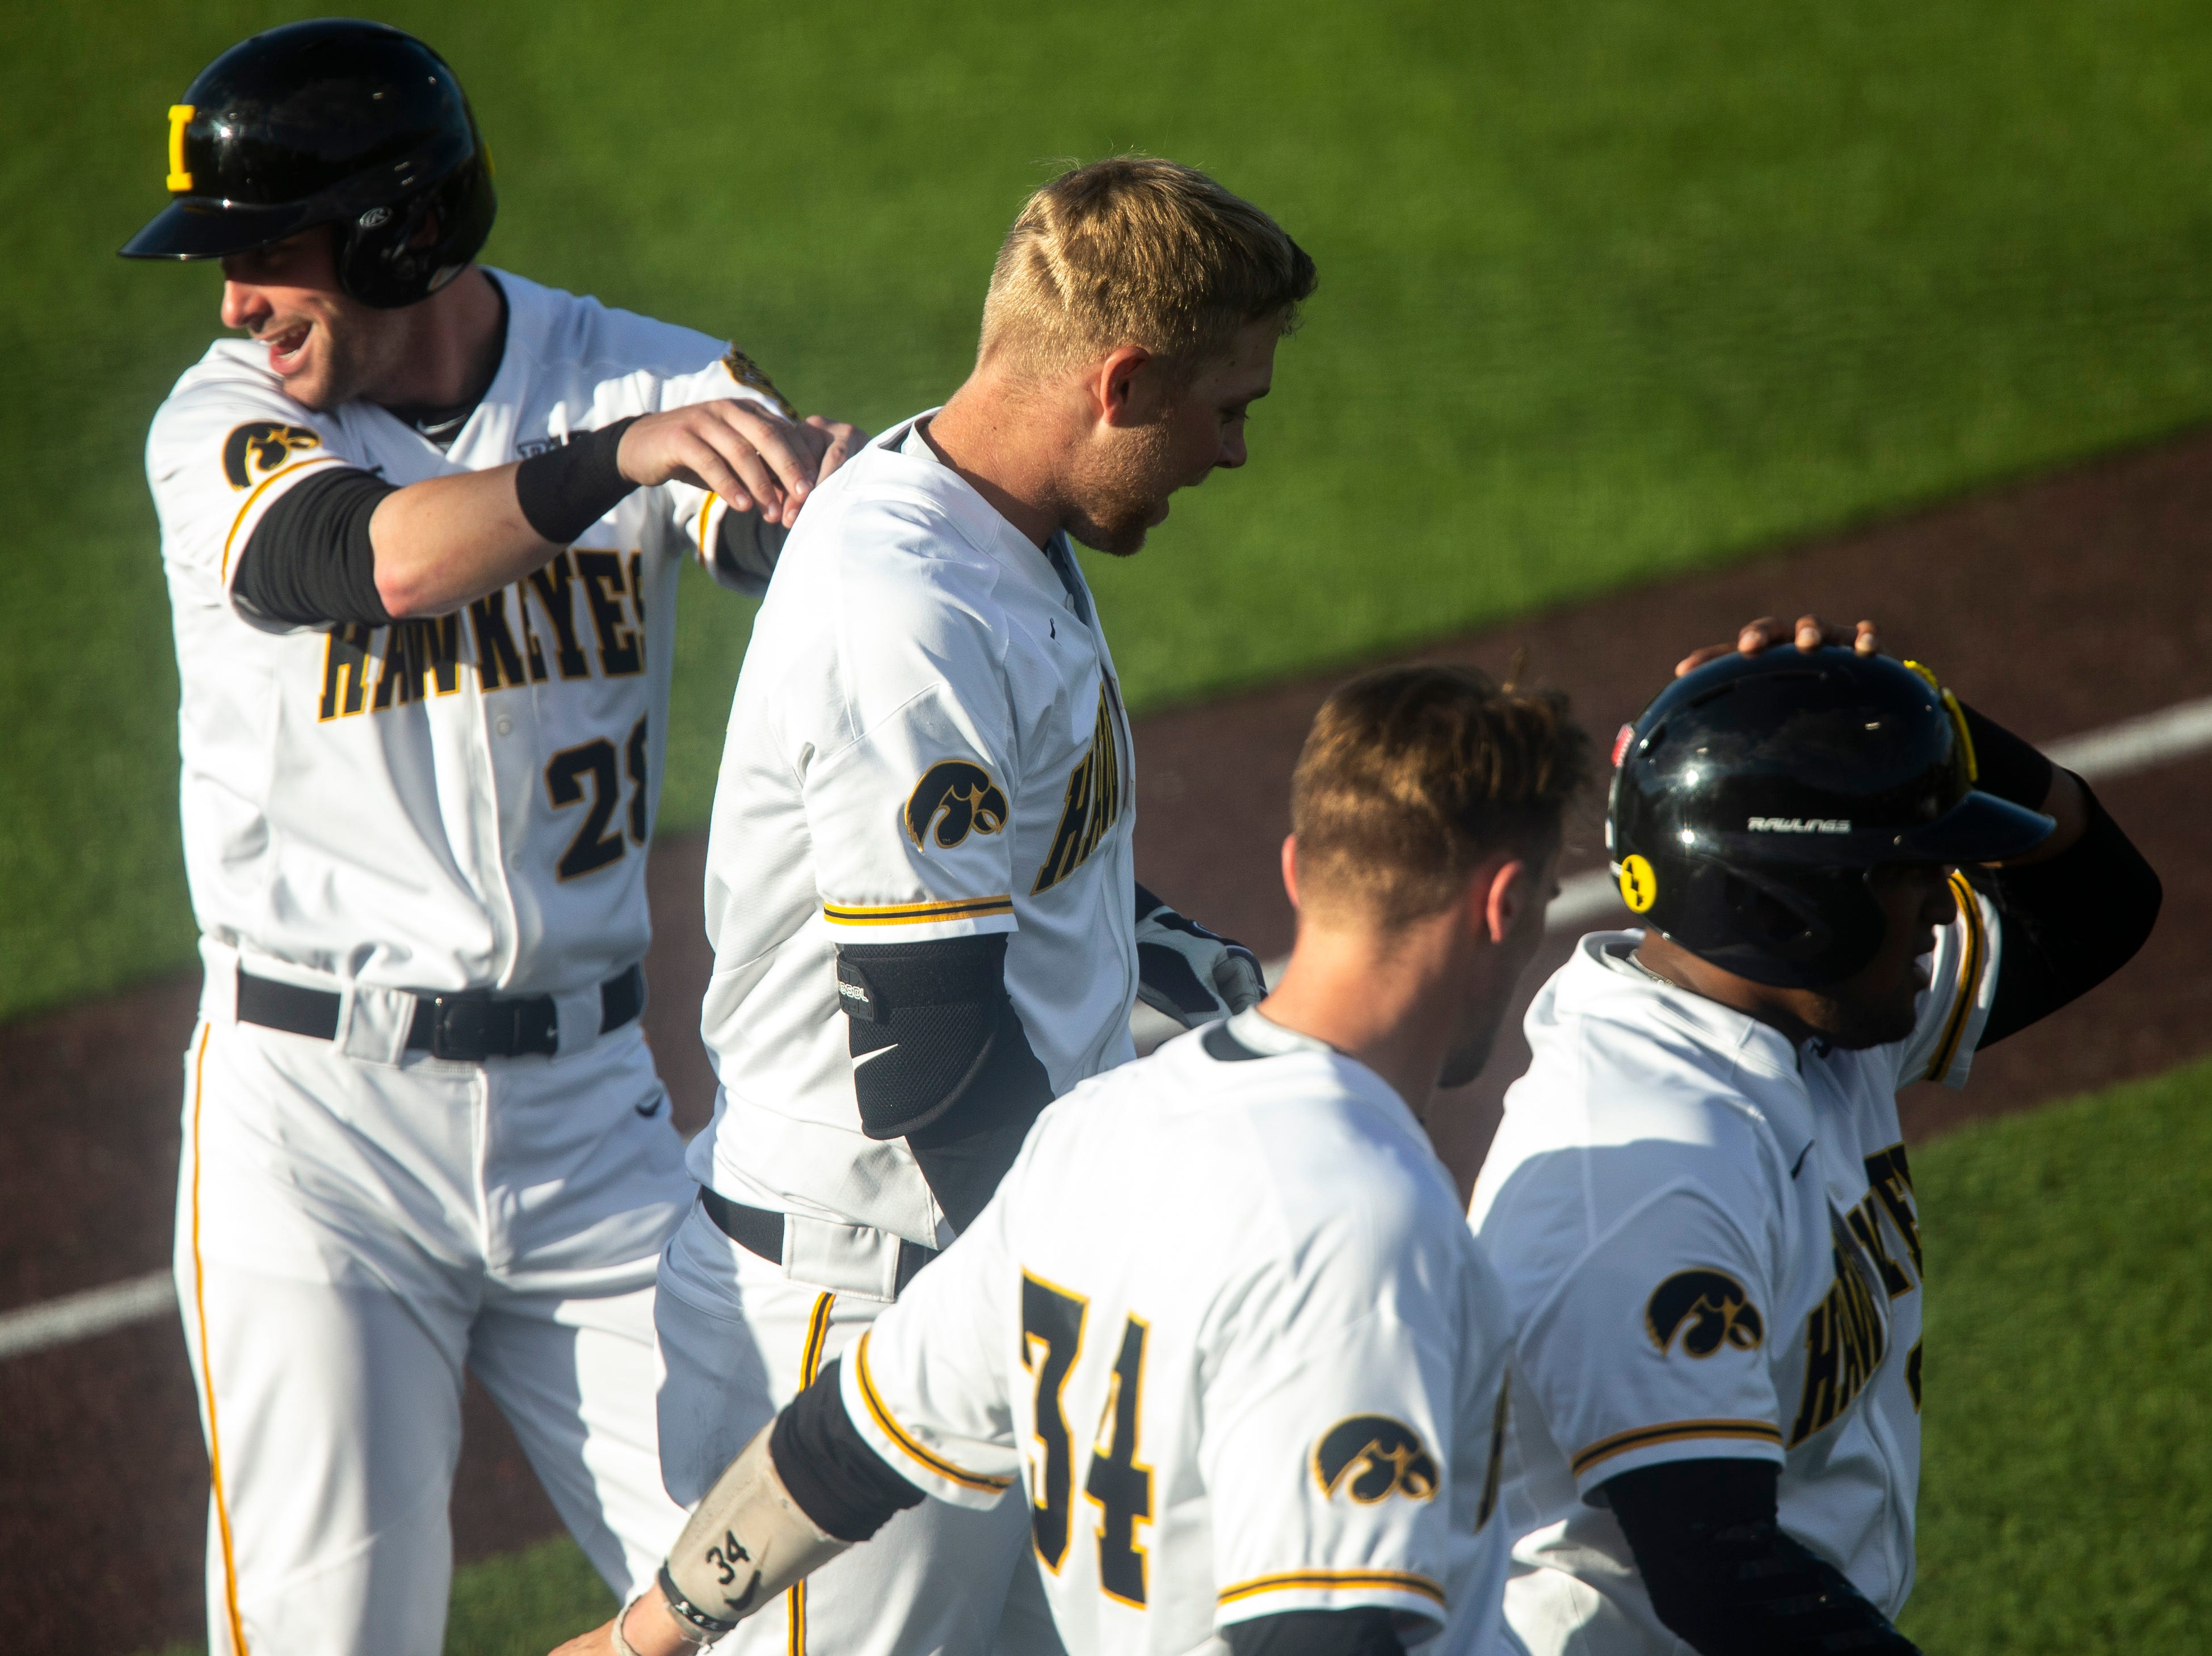 Iowa's Chris Whelan (28) gives teammate Zeb Adreon (5) a playful shove after Adreon hit a grand slam during a NCAA Big Ten Conference baseball game, Friday, May 10, 2019, at Duane Banks Field on the University of Iowa campus in Iowa City, Iowa.